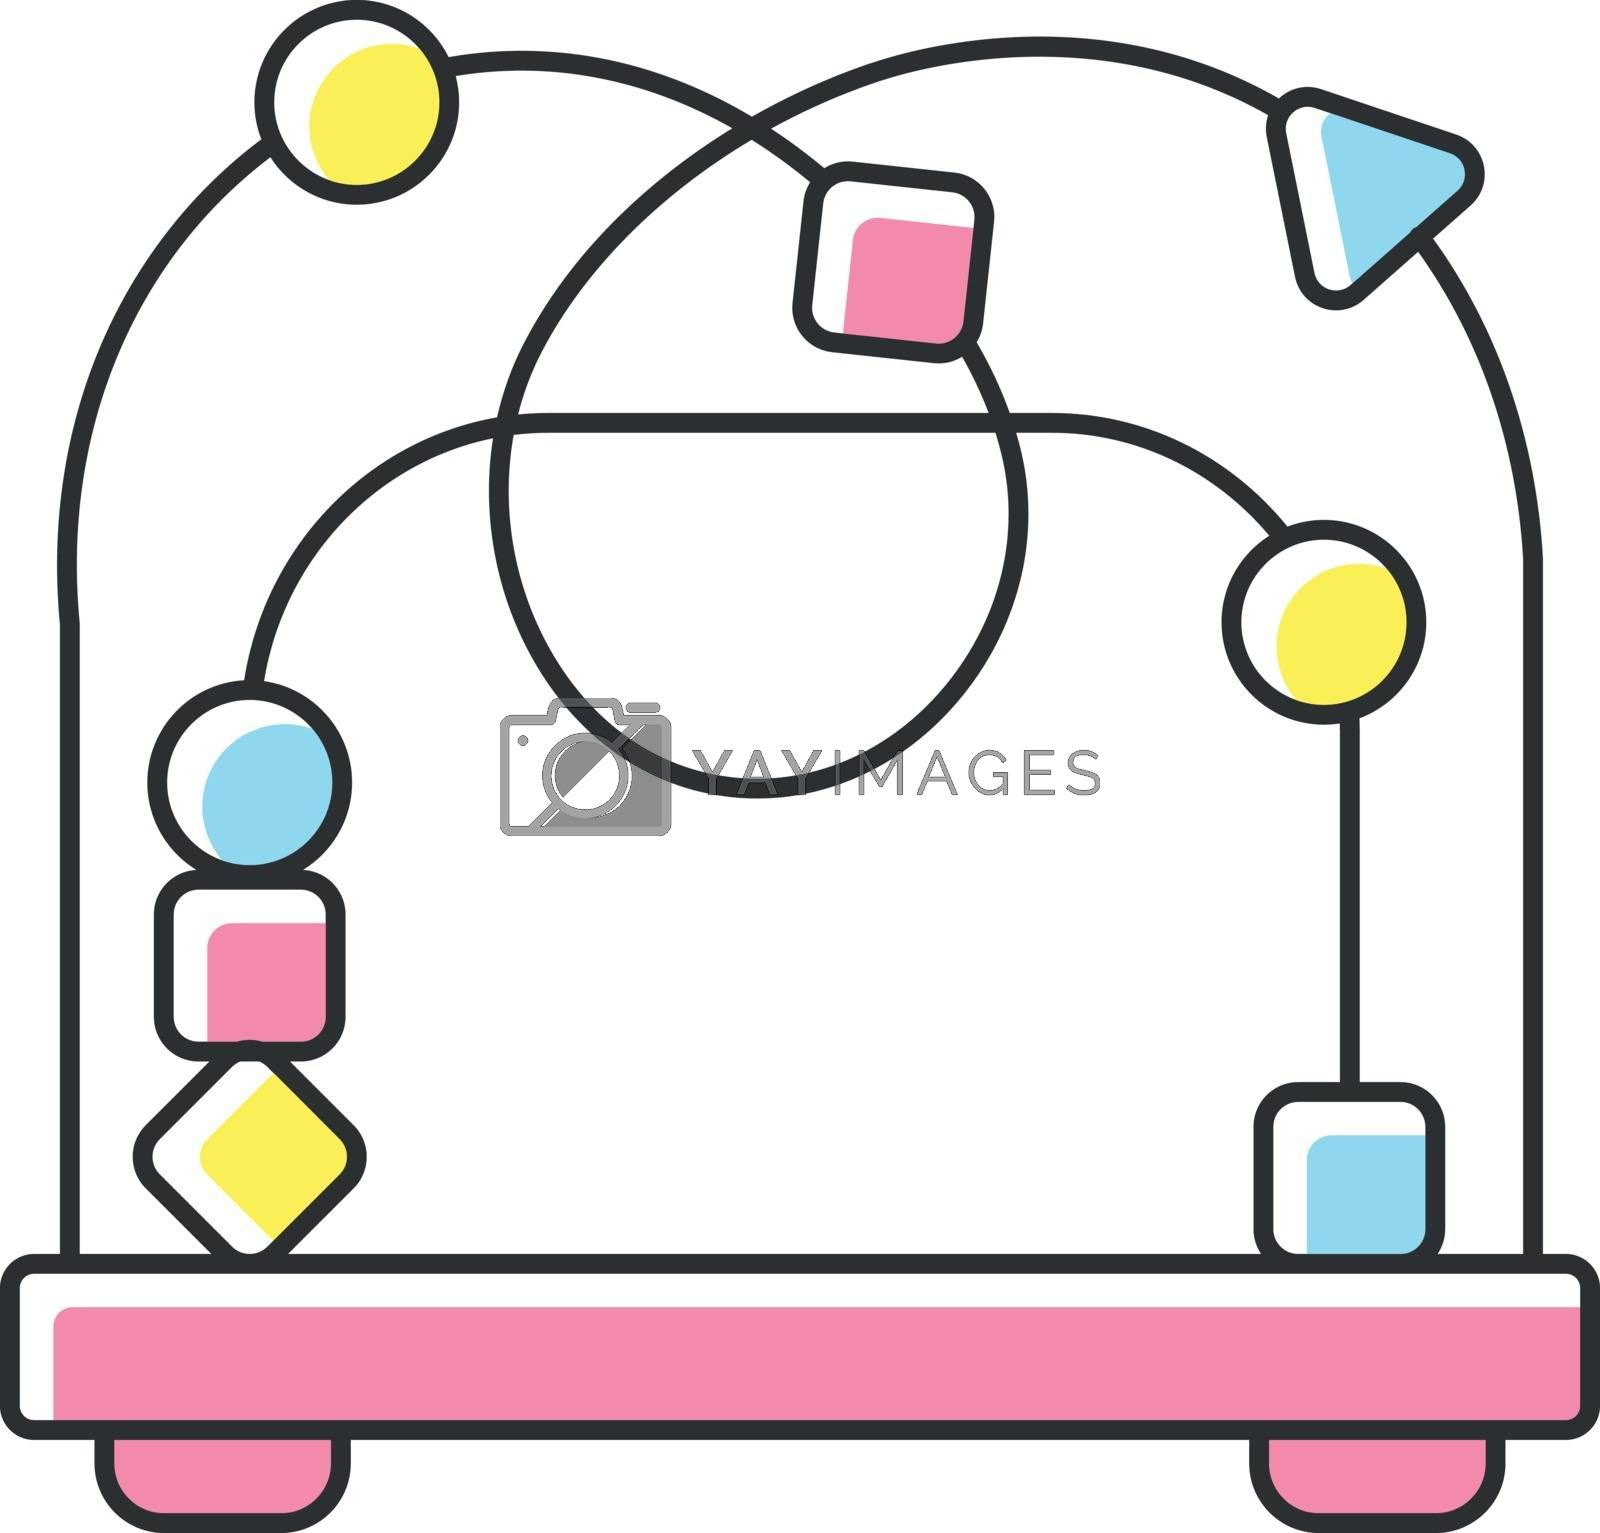 Bead maze toy RGB color icon. Roller coaster and labyrinth educational toys for kids. Shape and color recognition game. Infants amusement and activity ideas. Isolated vector illustration